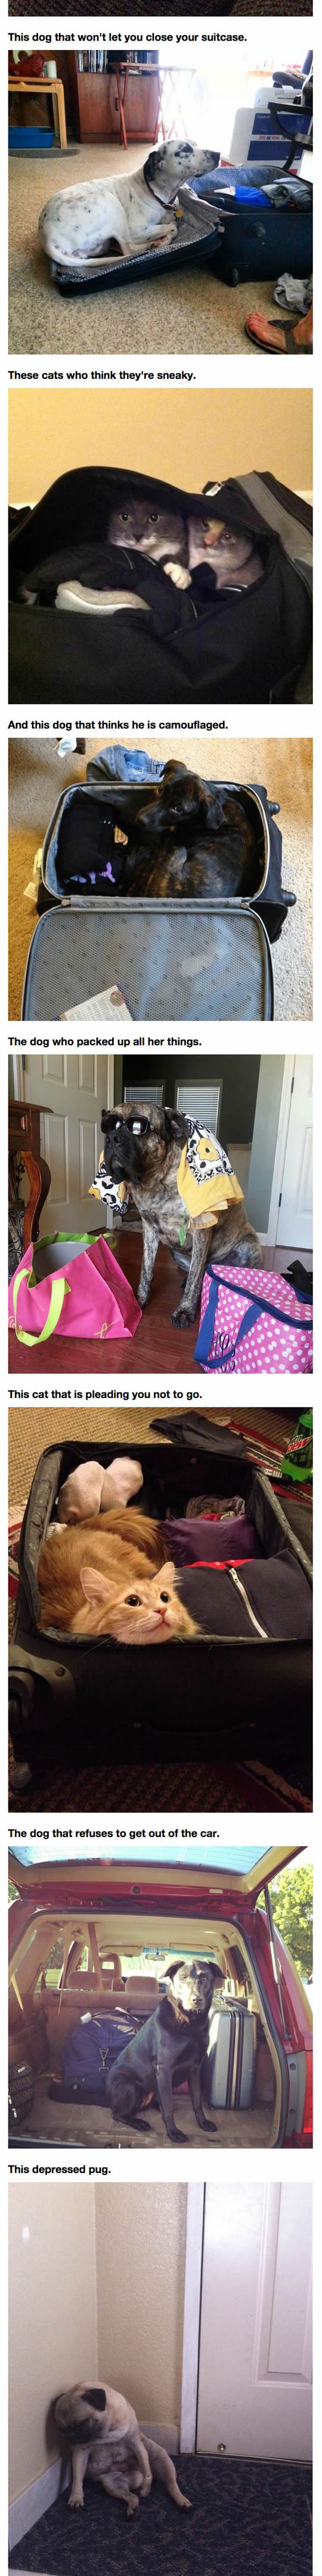 funny-dogs-vacation-travel-clothes-suitcase-cat